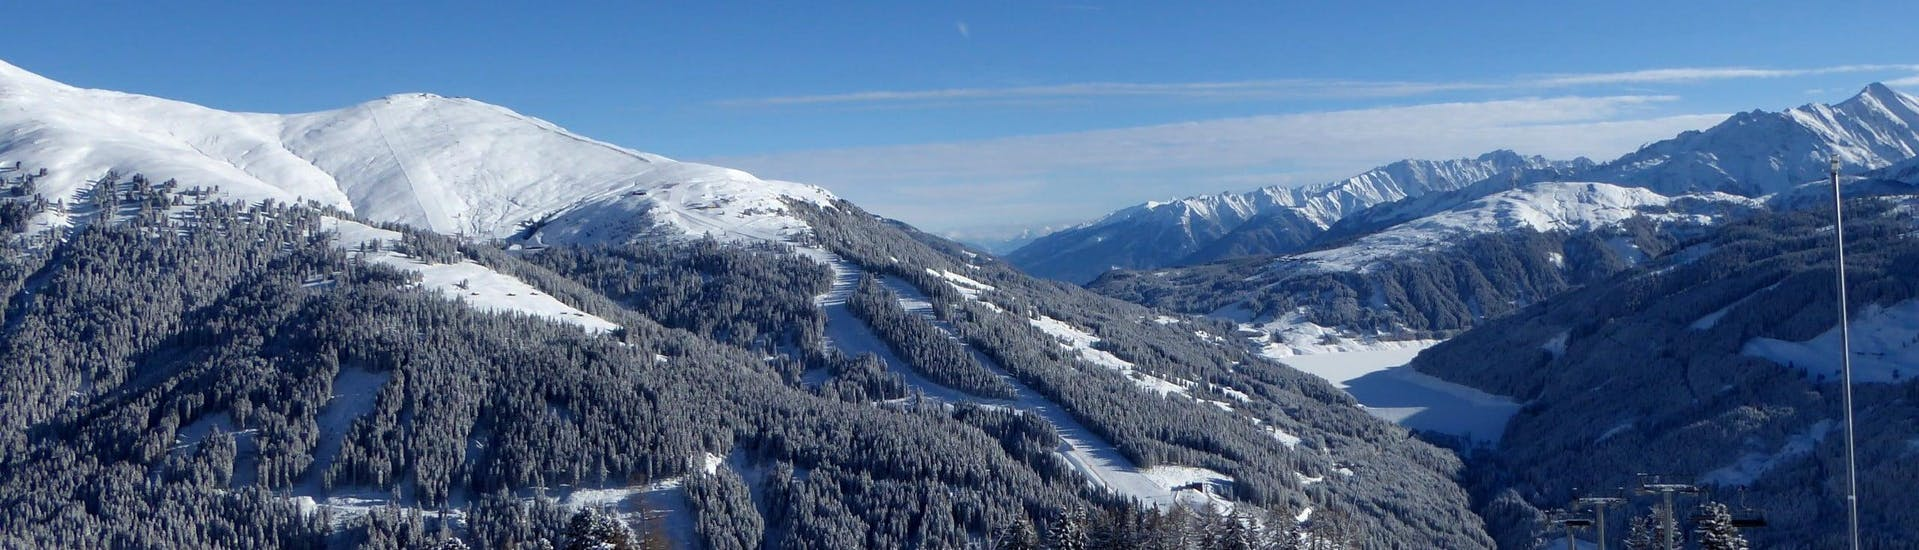 View over the sunny mountain landscape while learning to ski with the ski schools in Gerlos.